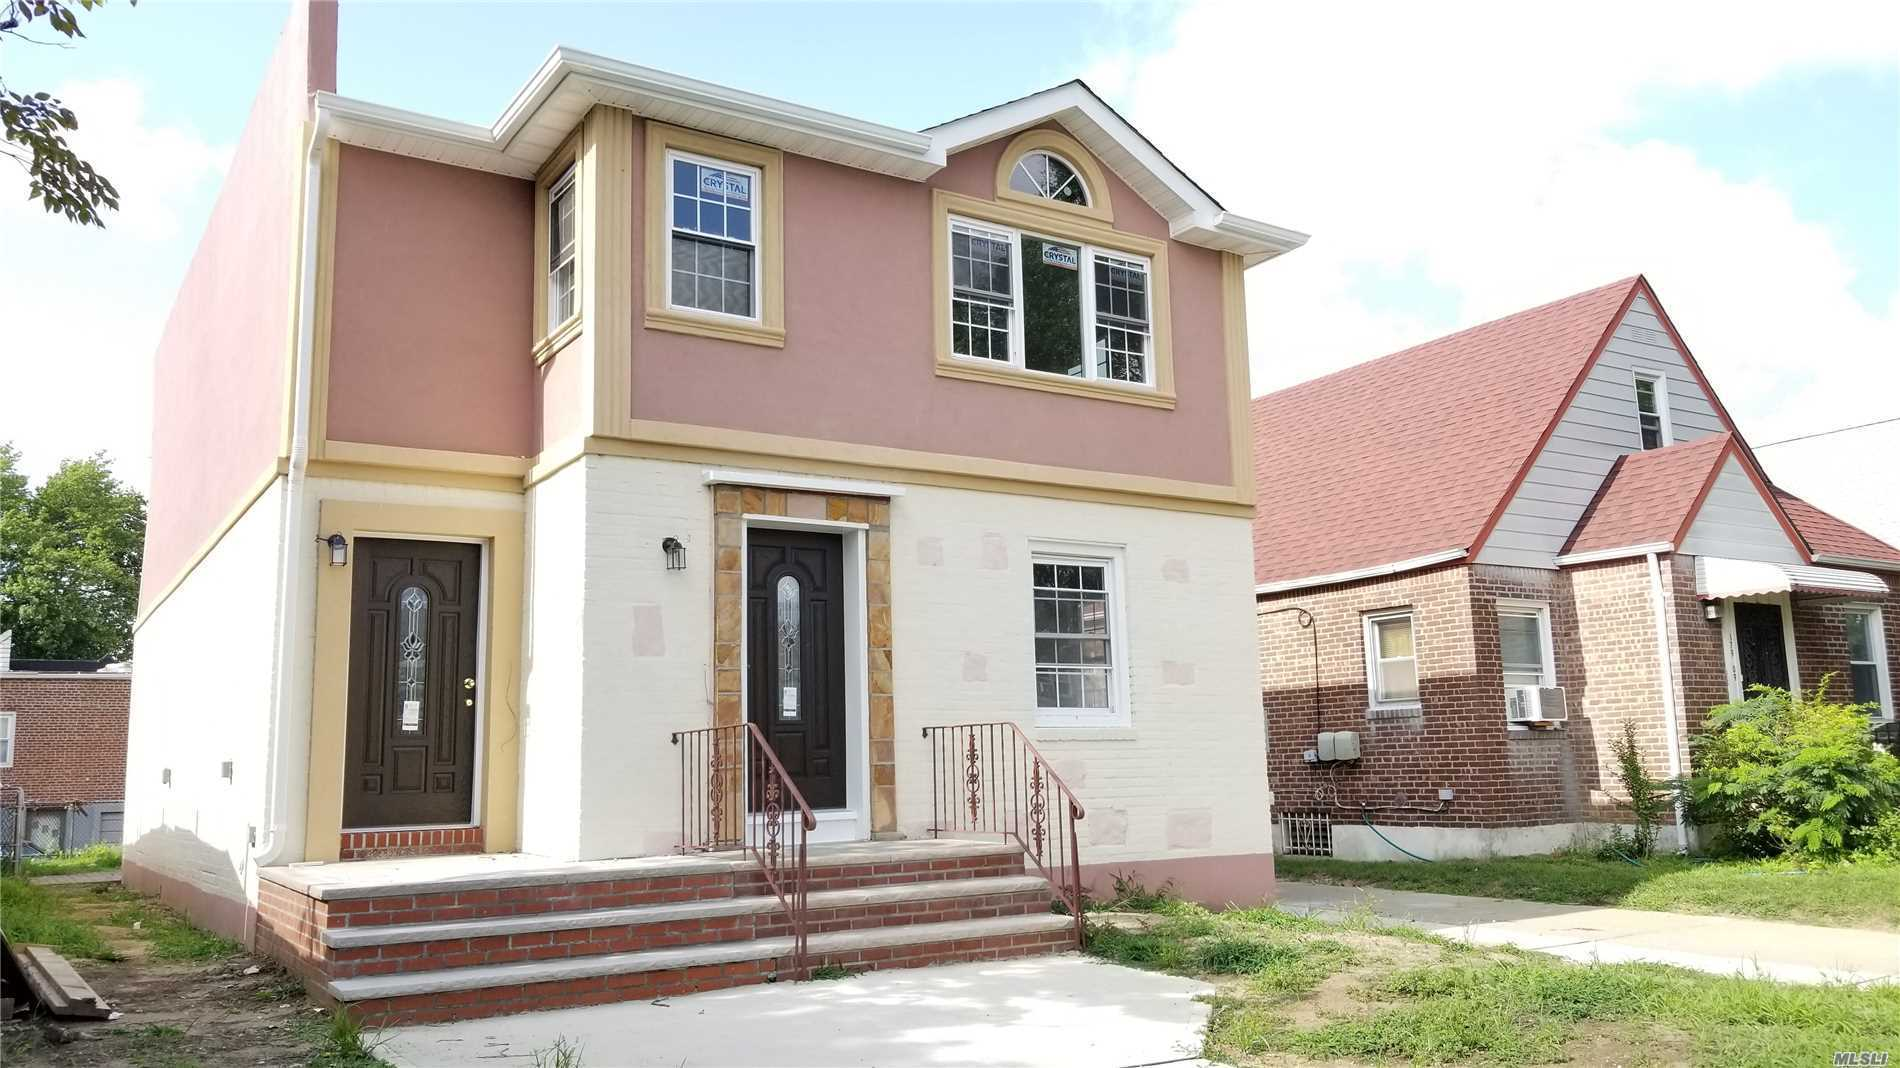 Photo of home for sale at 179-03 135 Ave, Springfield Gdns NY